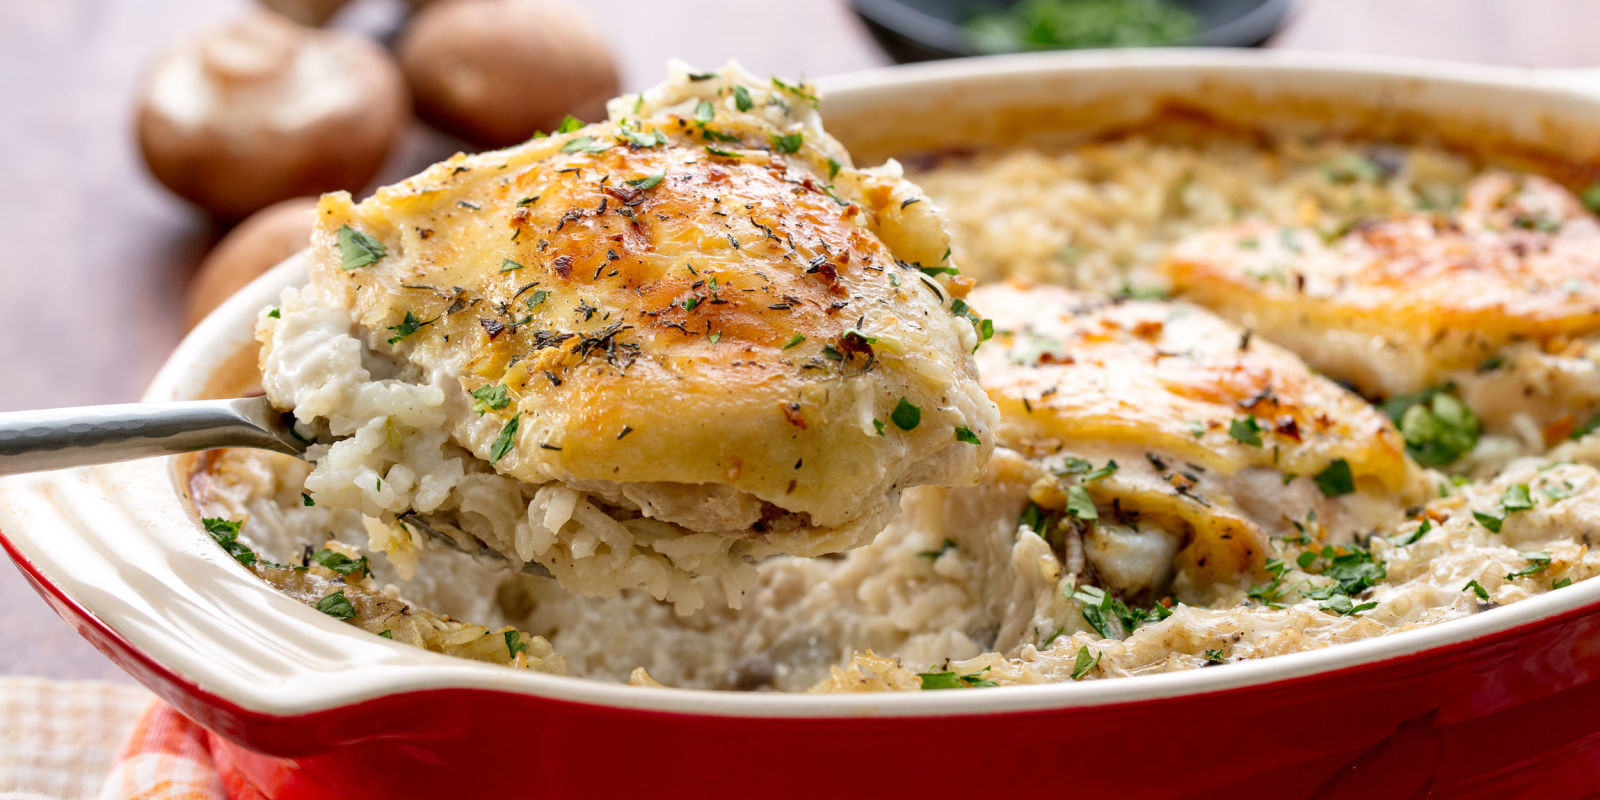 Chicken And Rice Casserole Recipes  Easy Chicken and Rice Casserole Recipe How to Make Baked